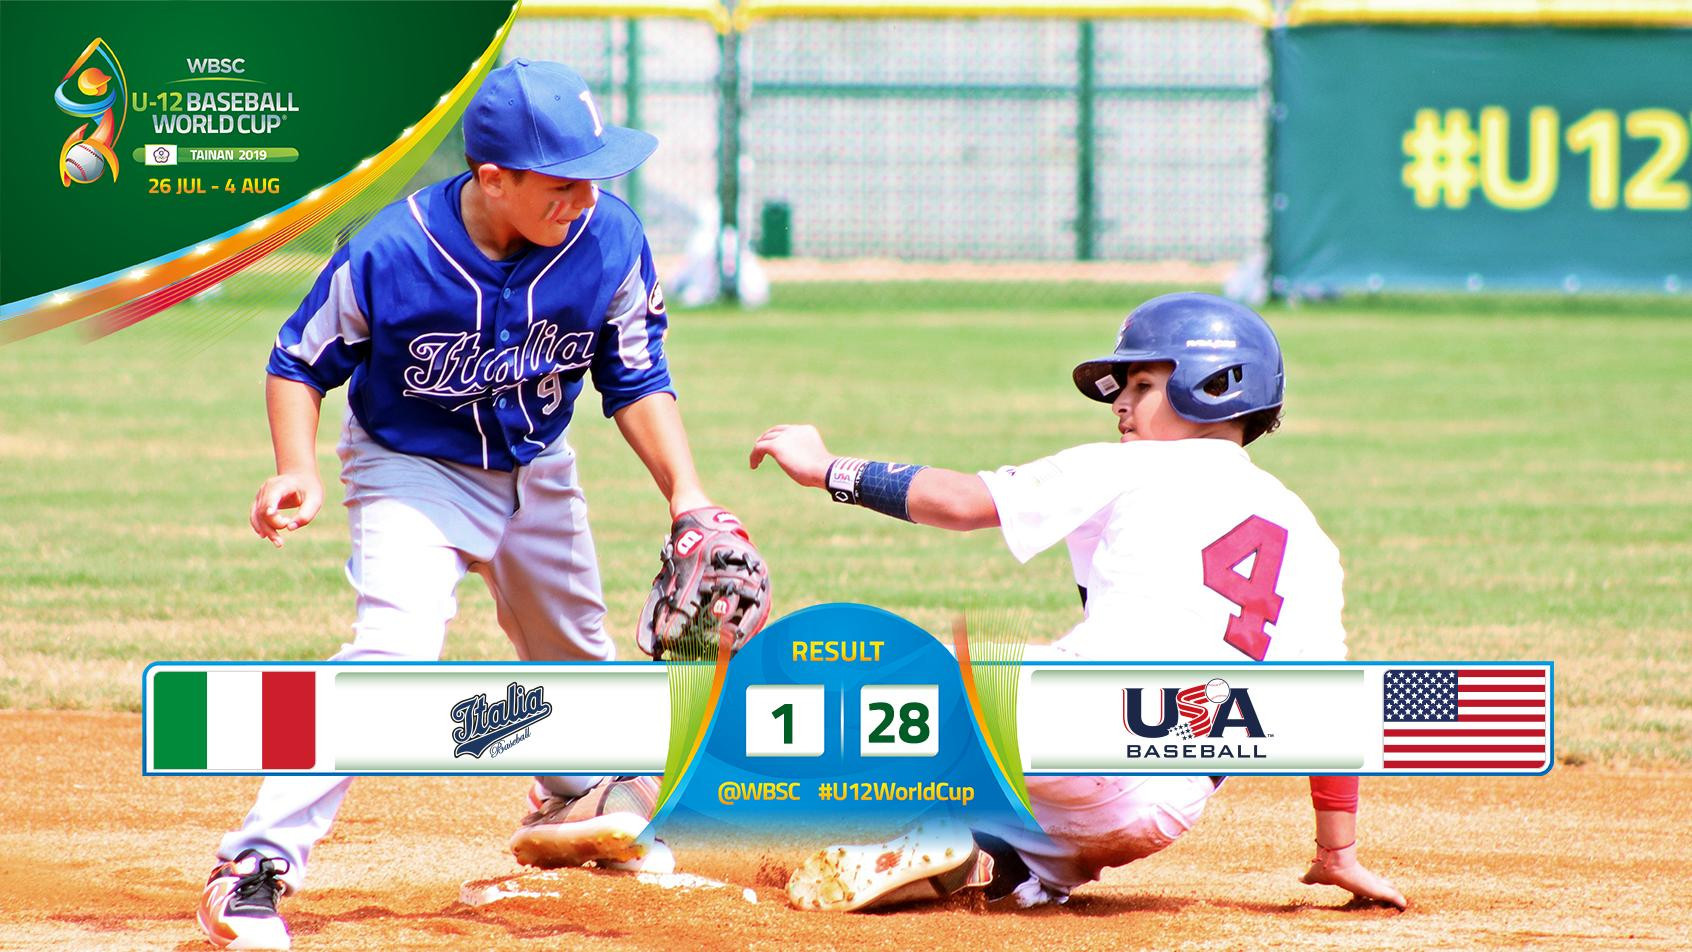 United States bounce back with big victory at WBSC Under-12 World Cup